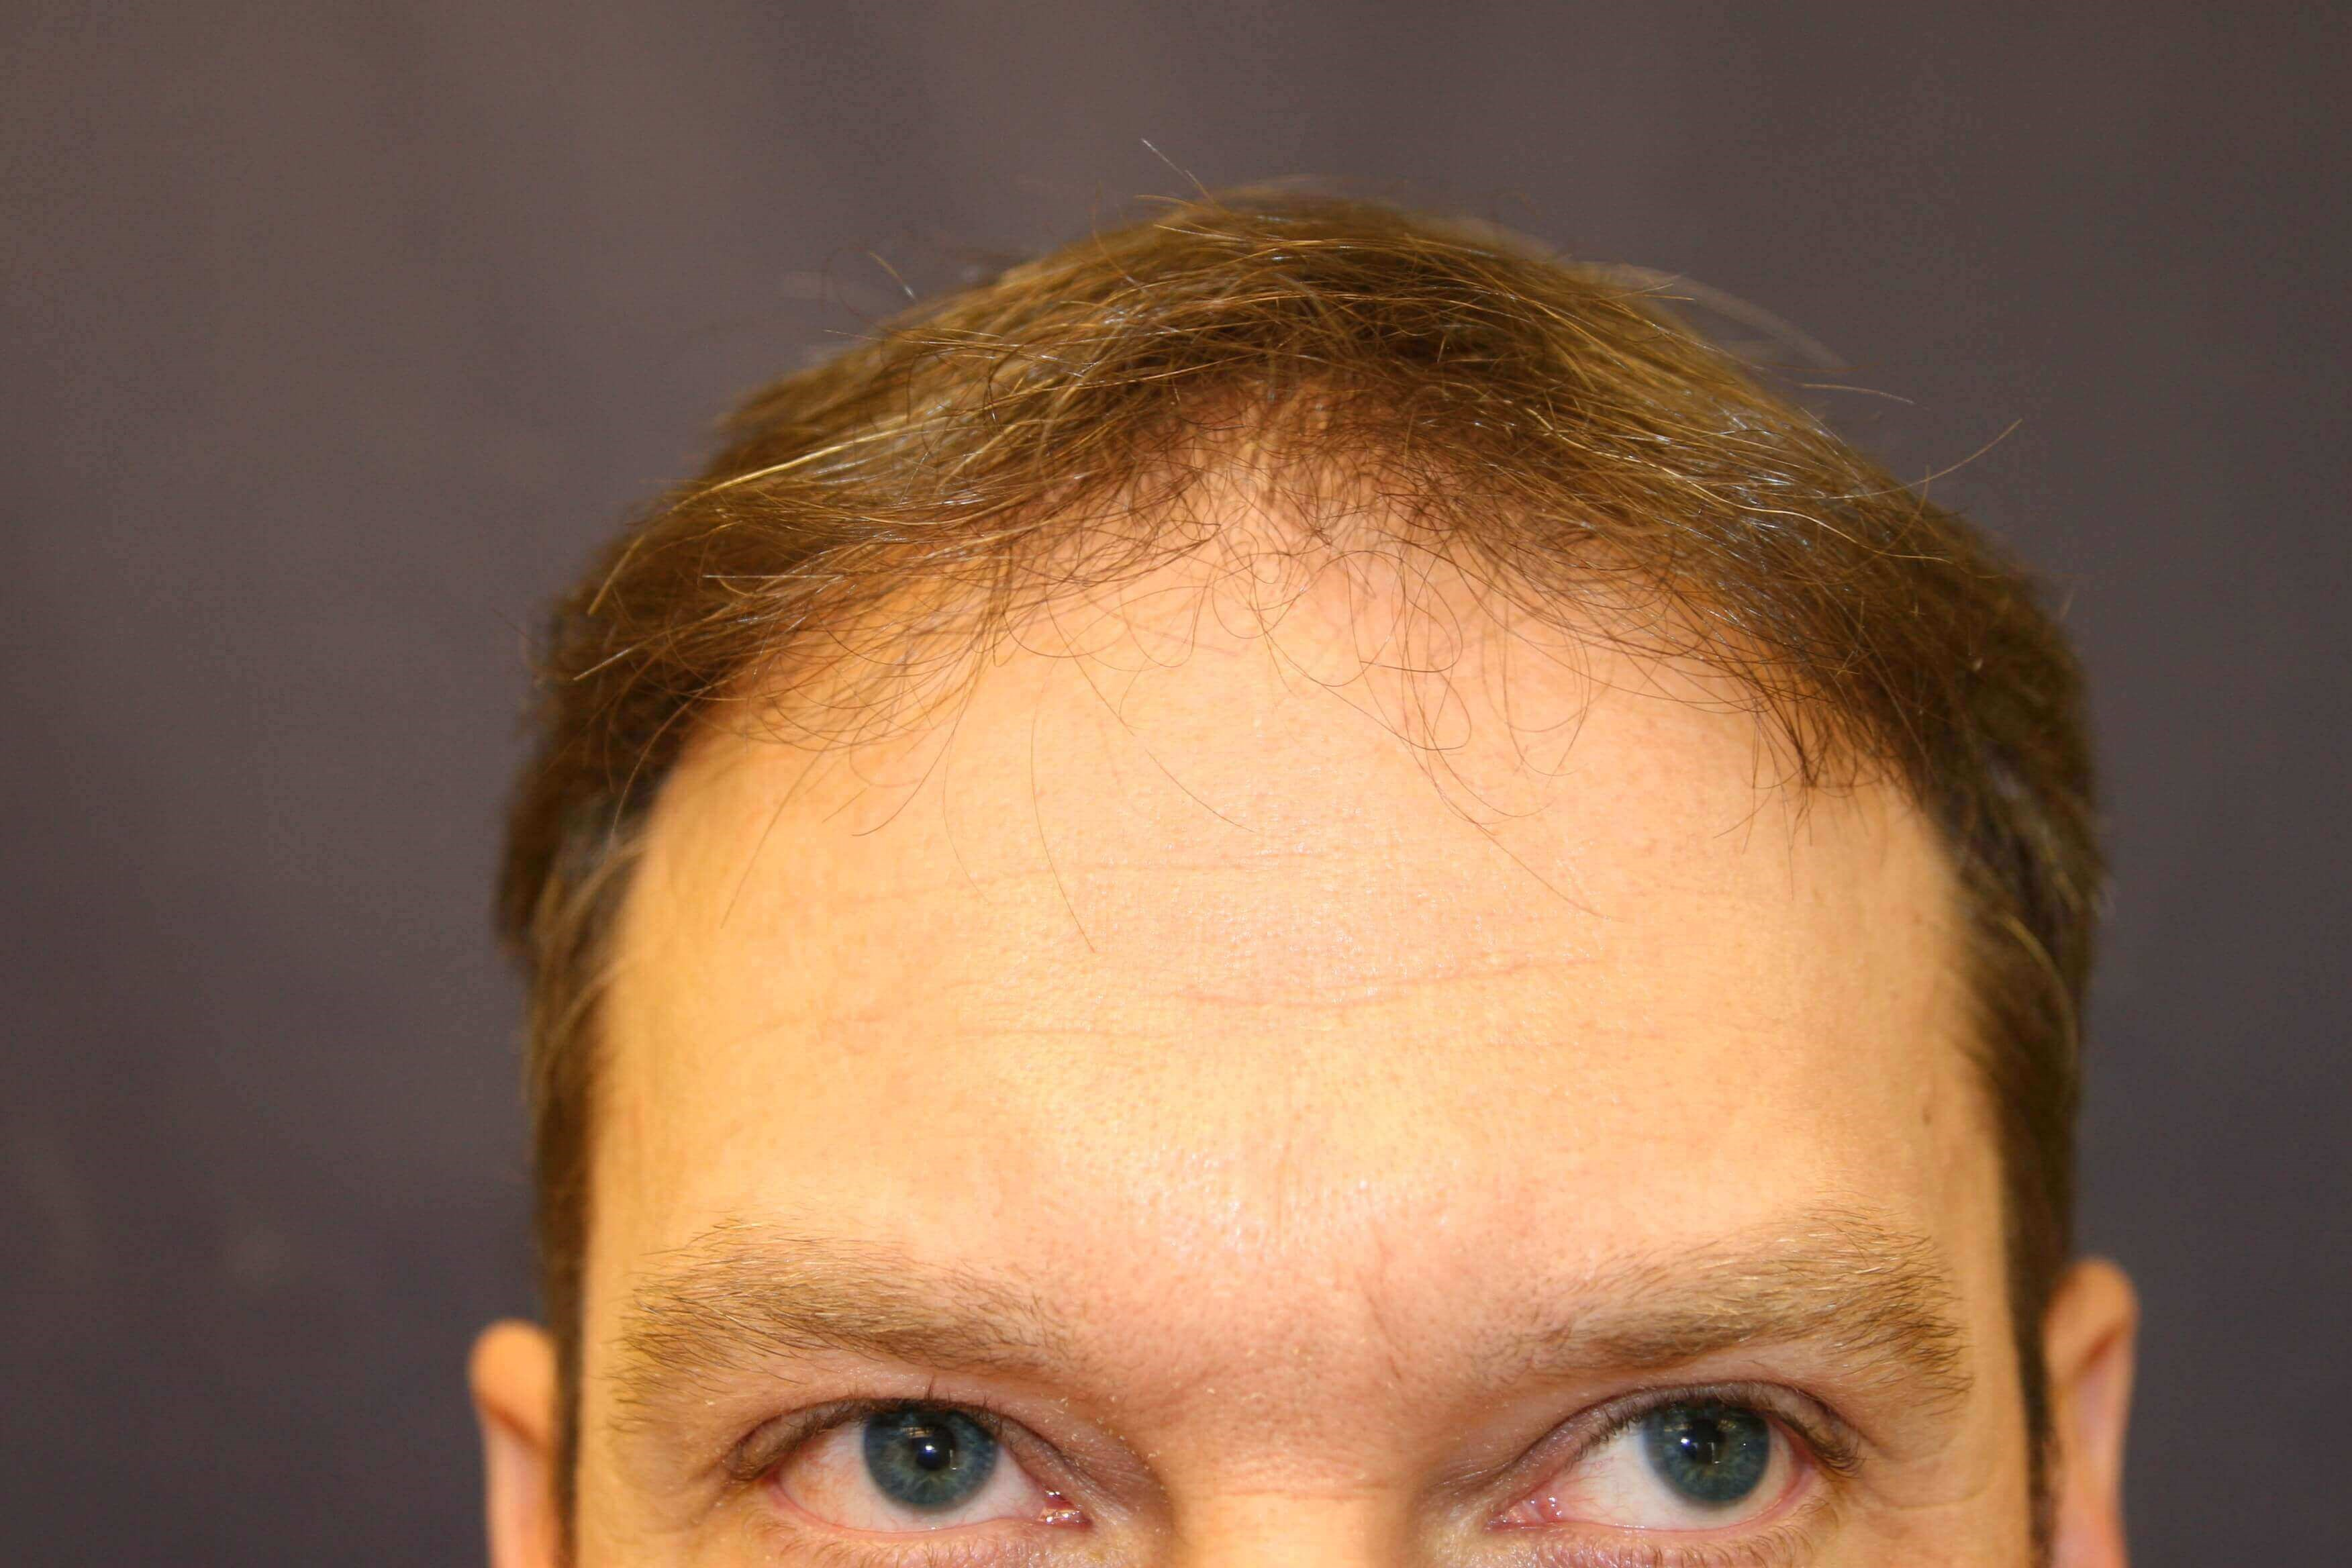 Hair Restoration Surgery Before